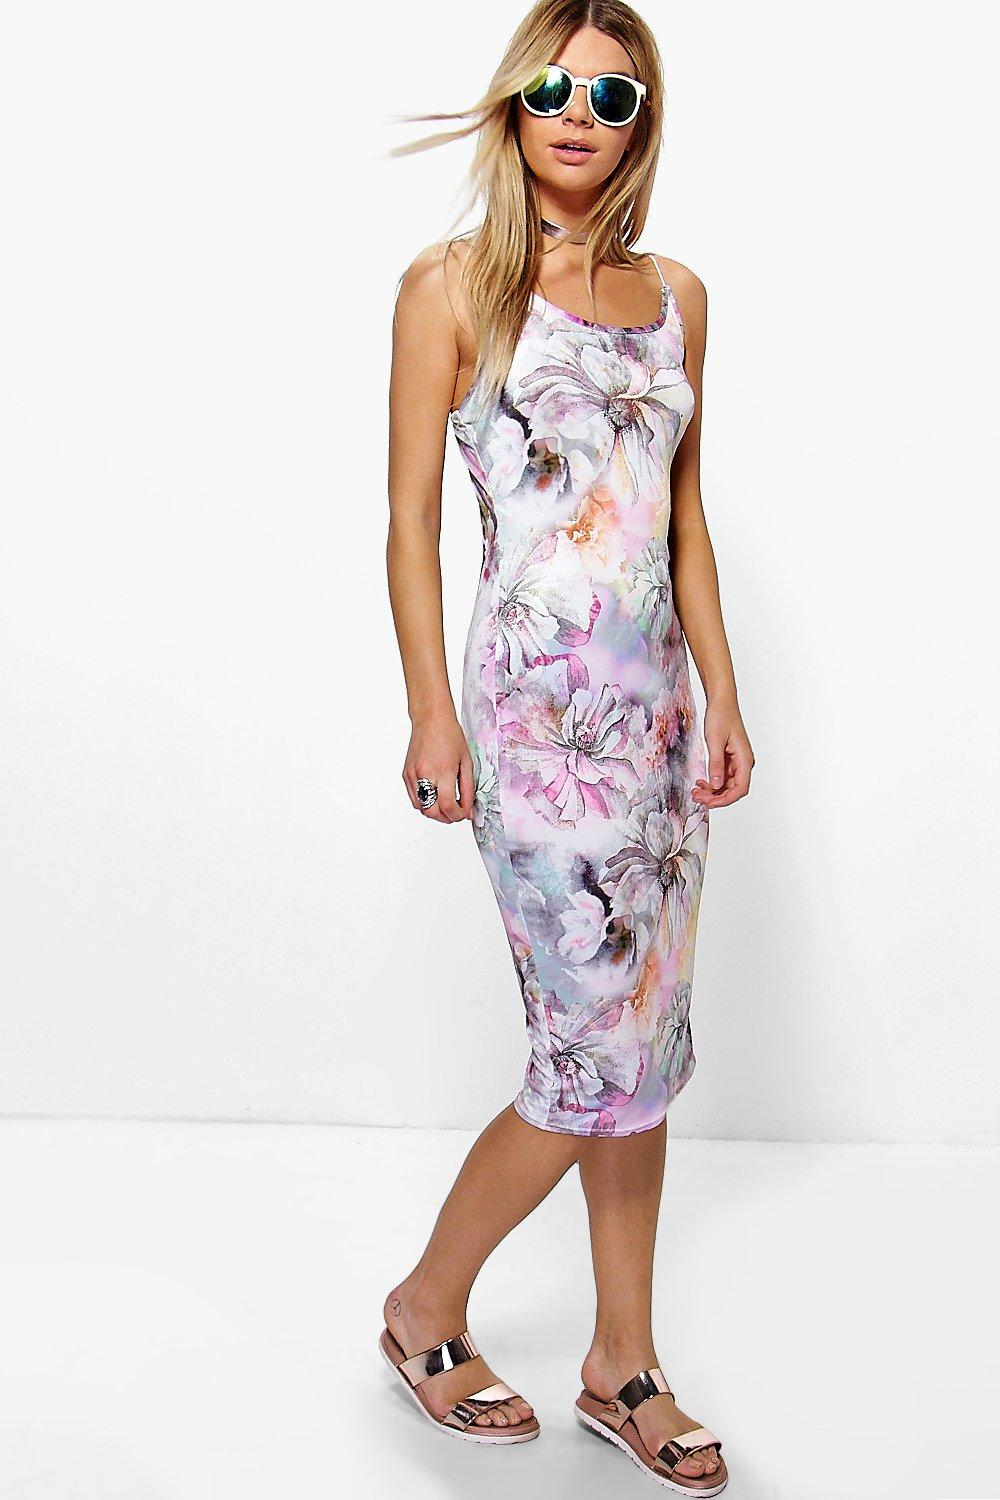 Rachael Floral Strappy Bodycon Midi Dress